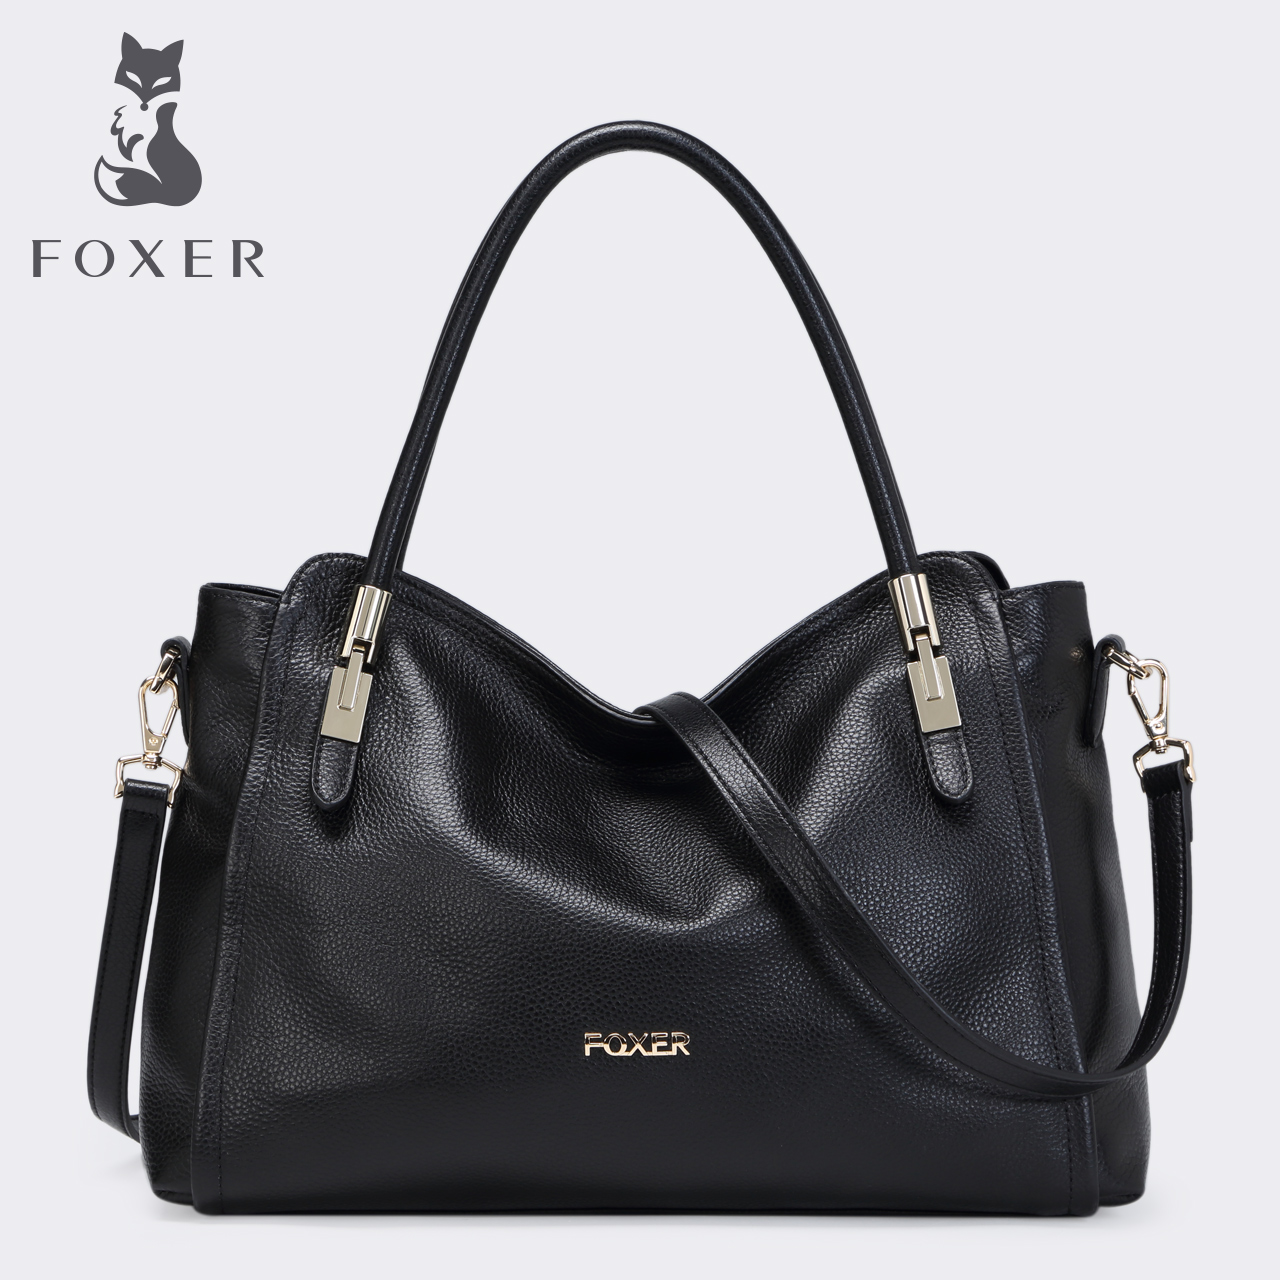 Gold fox new shoulder bag female European and American fashion leather ladies bag casual Messenger portable handbag tide